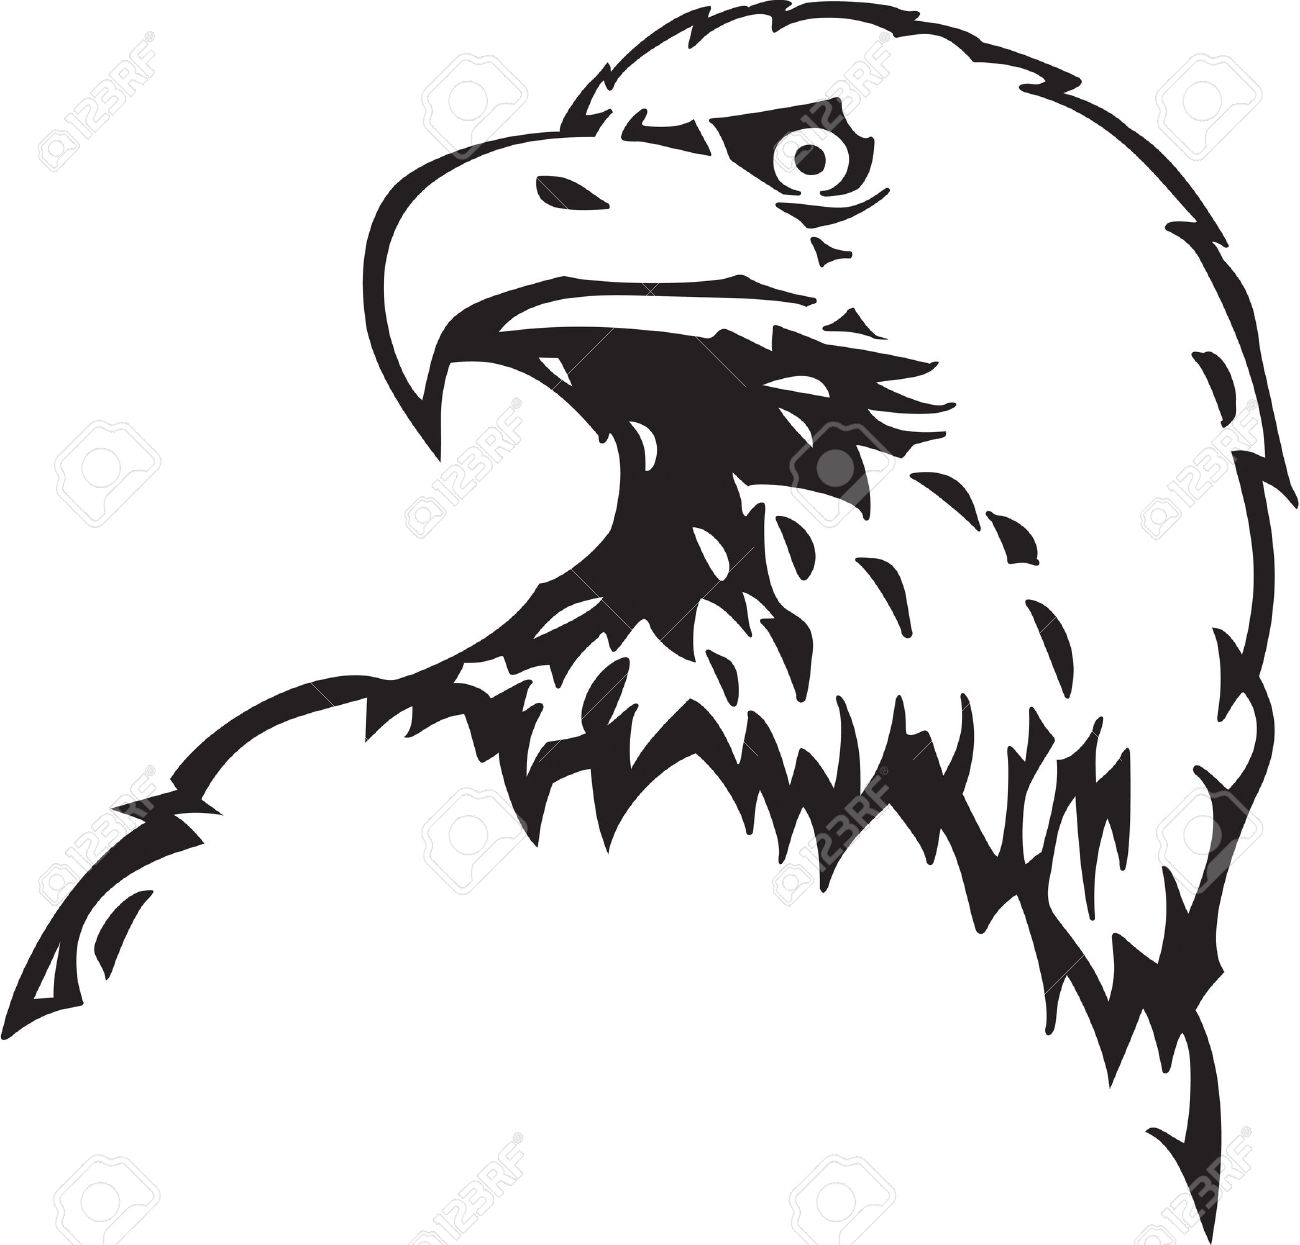 Eagle clipart vector 20 free Cliparts Download images on